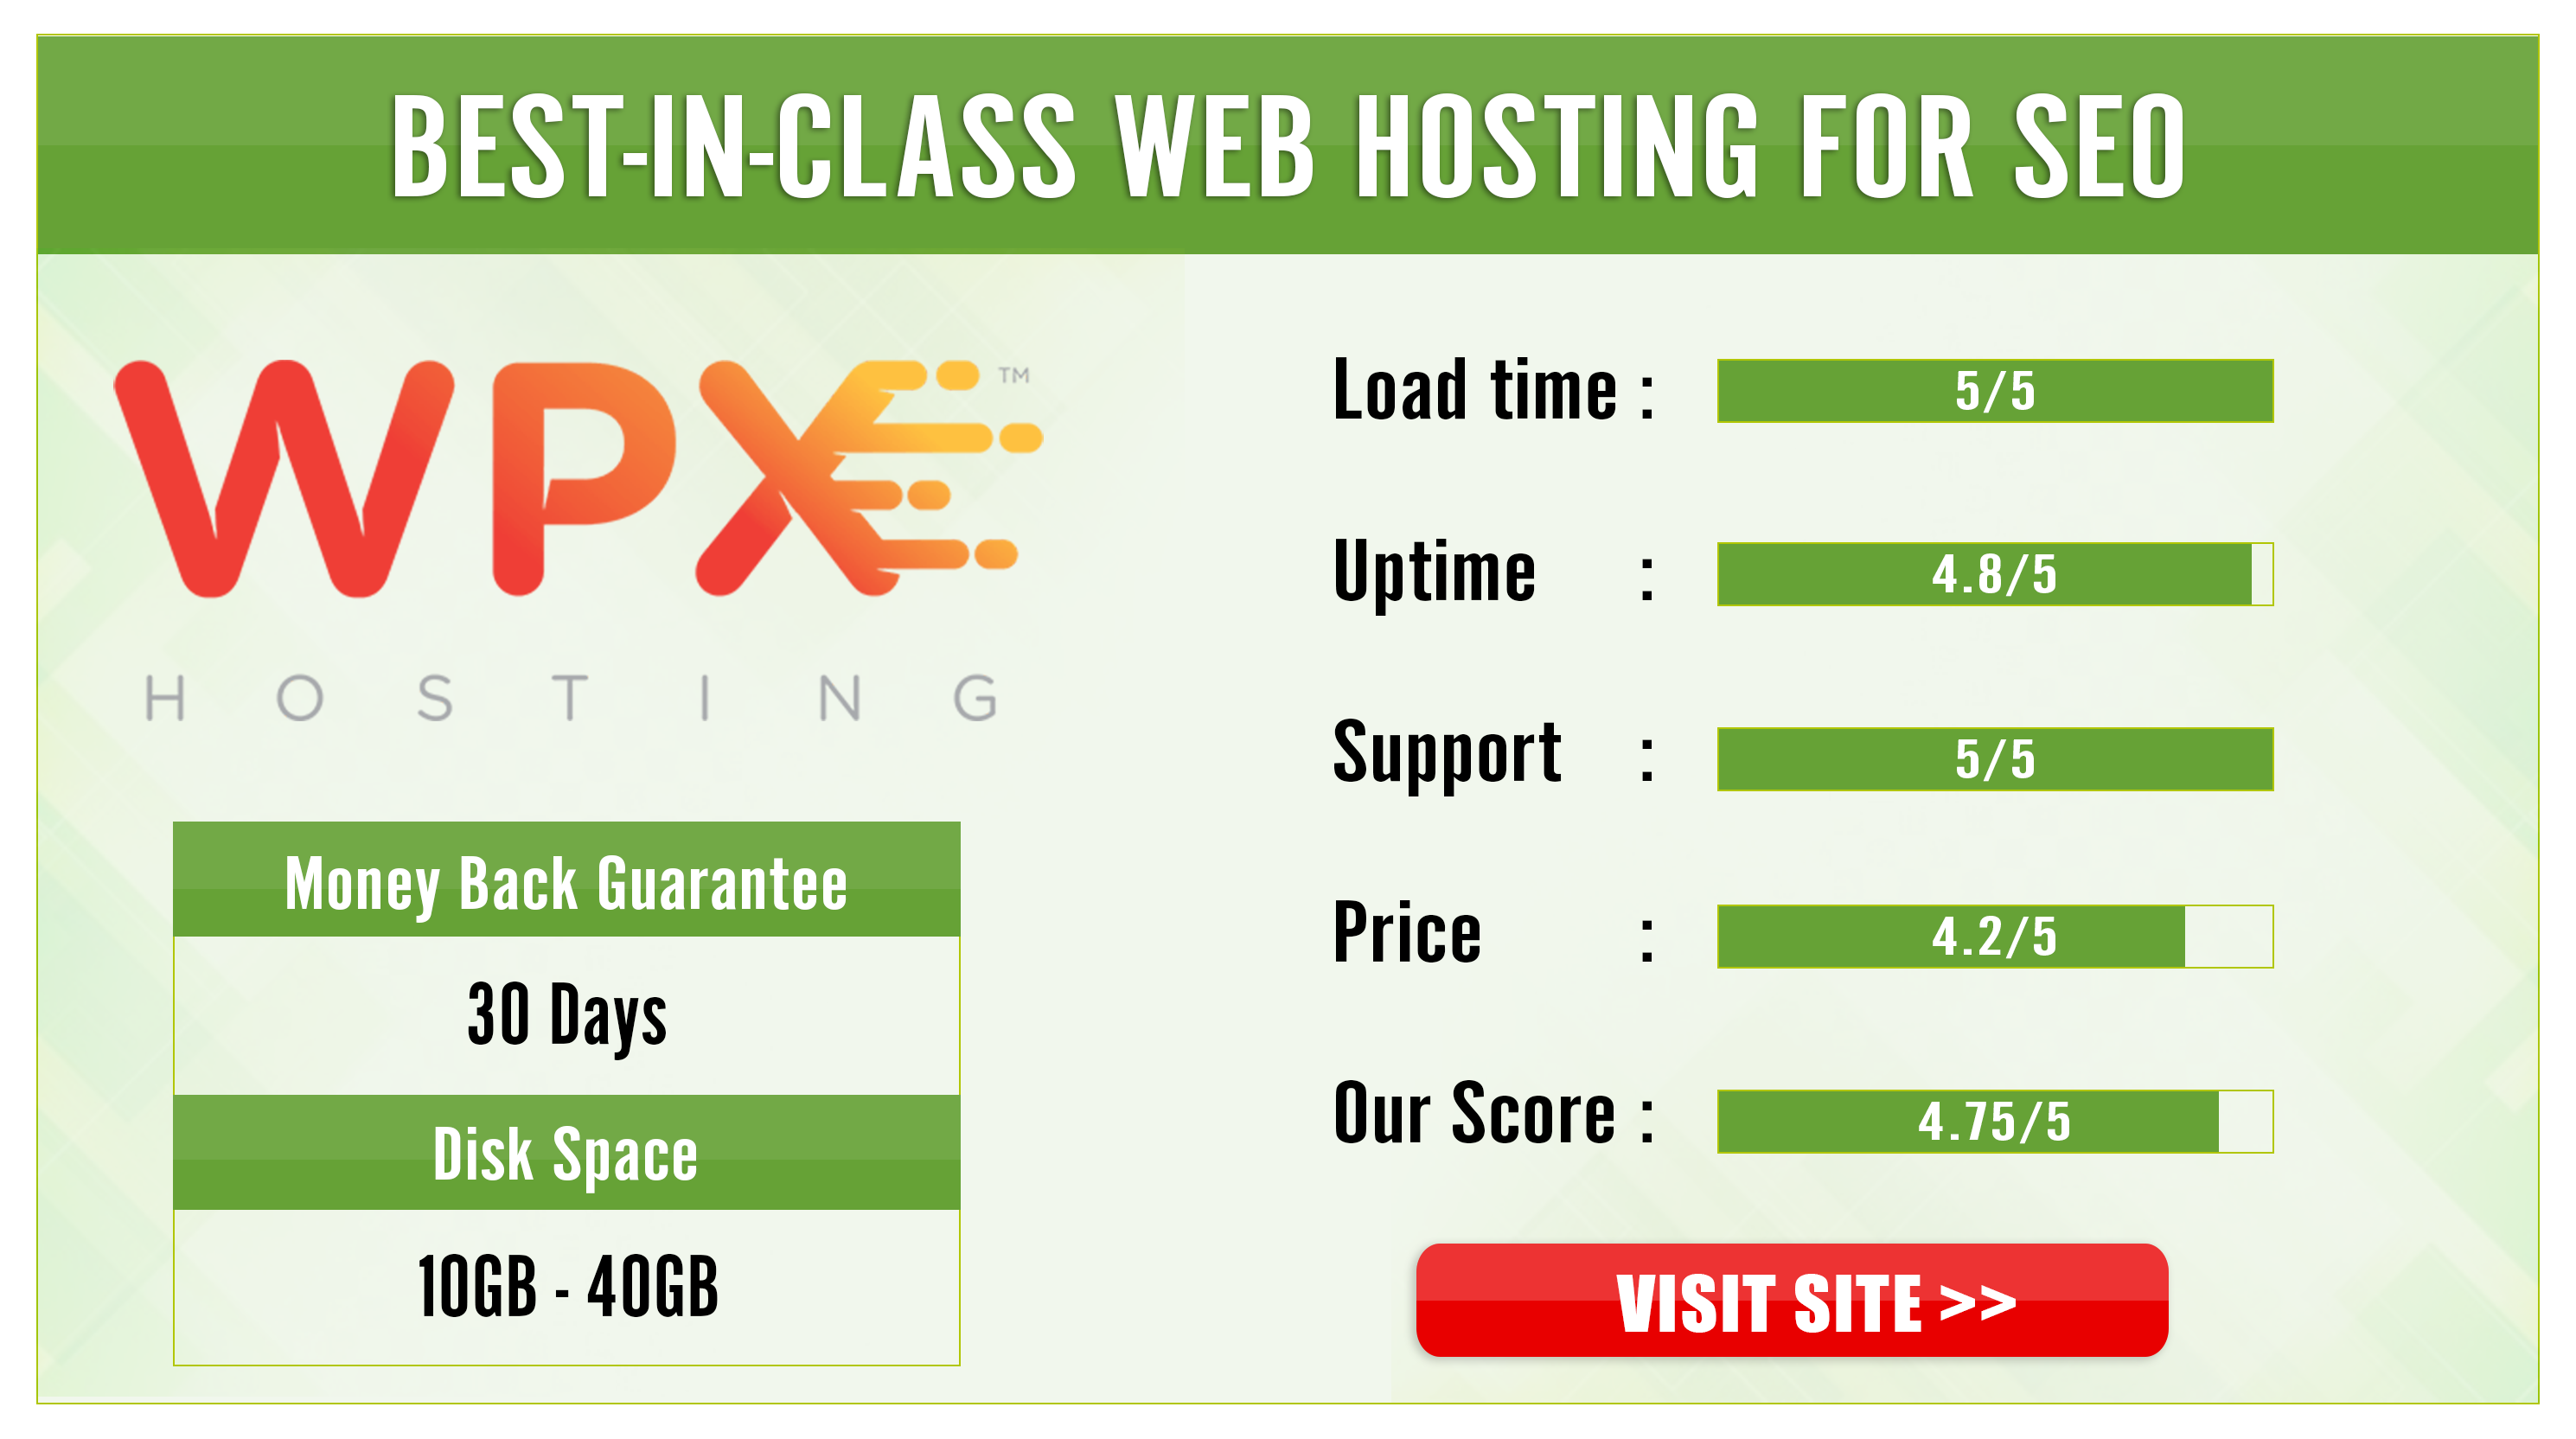 Best in Class hosting - WPX